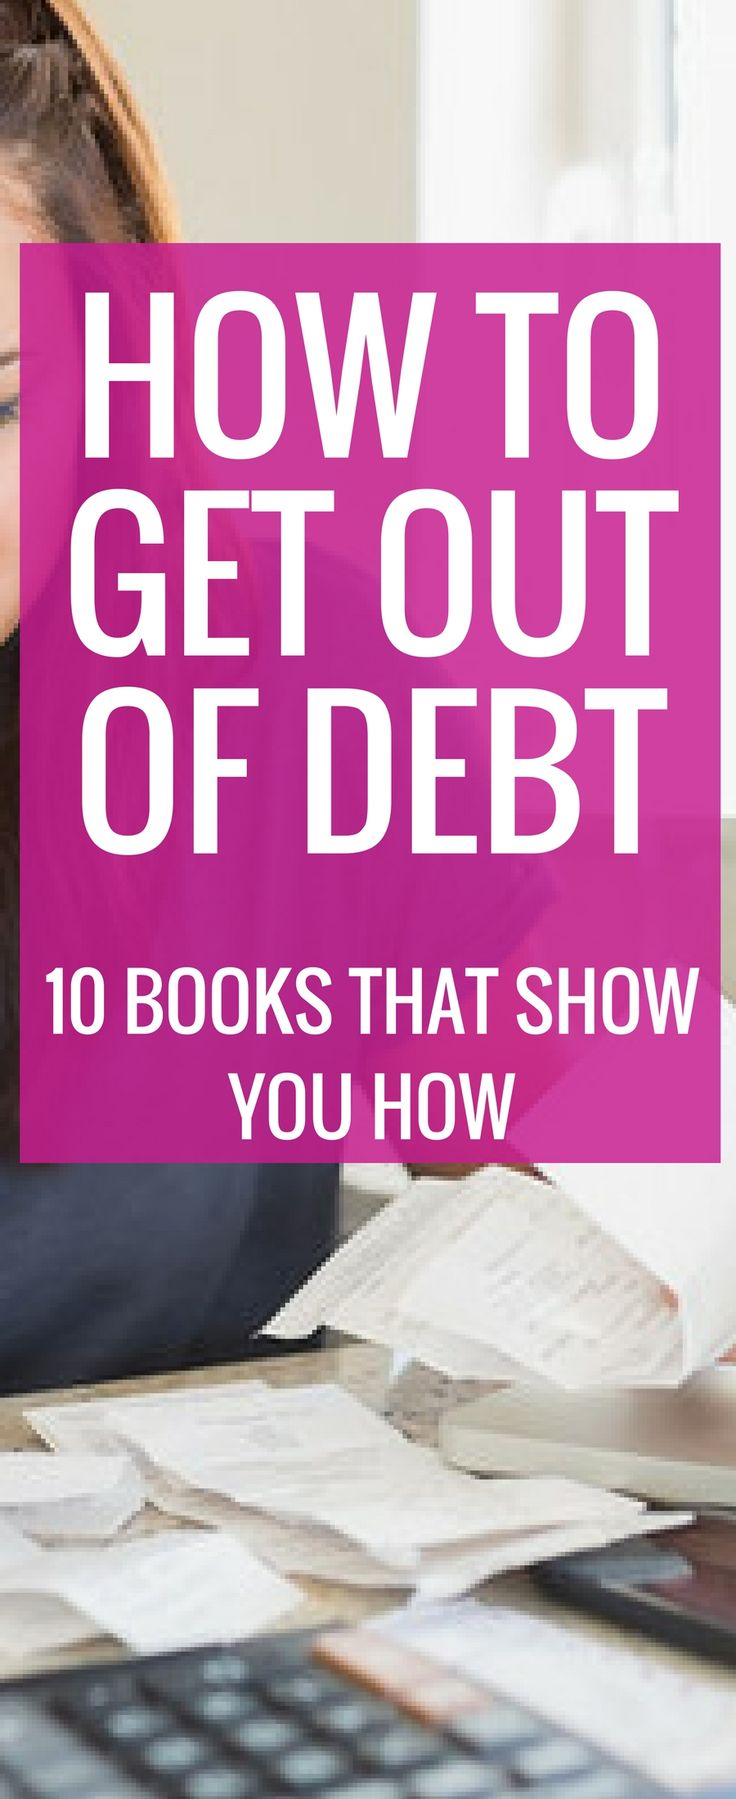 How to get out of debt| How to get of debt fast| How to get out of debt tips